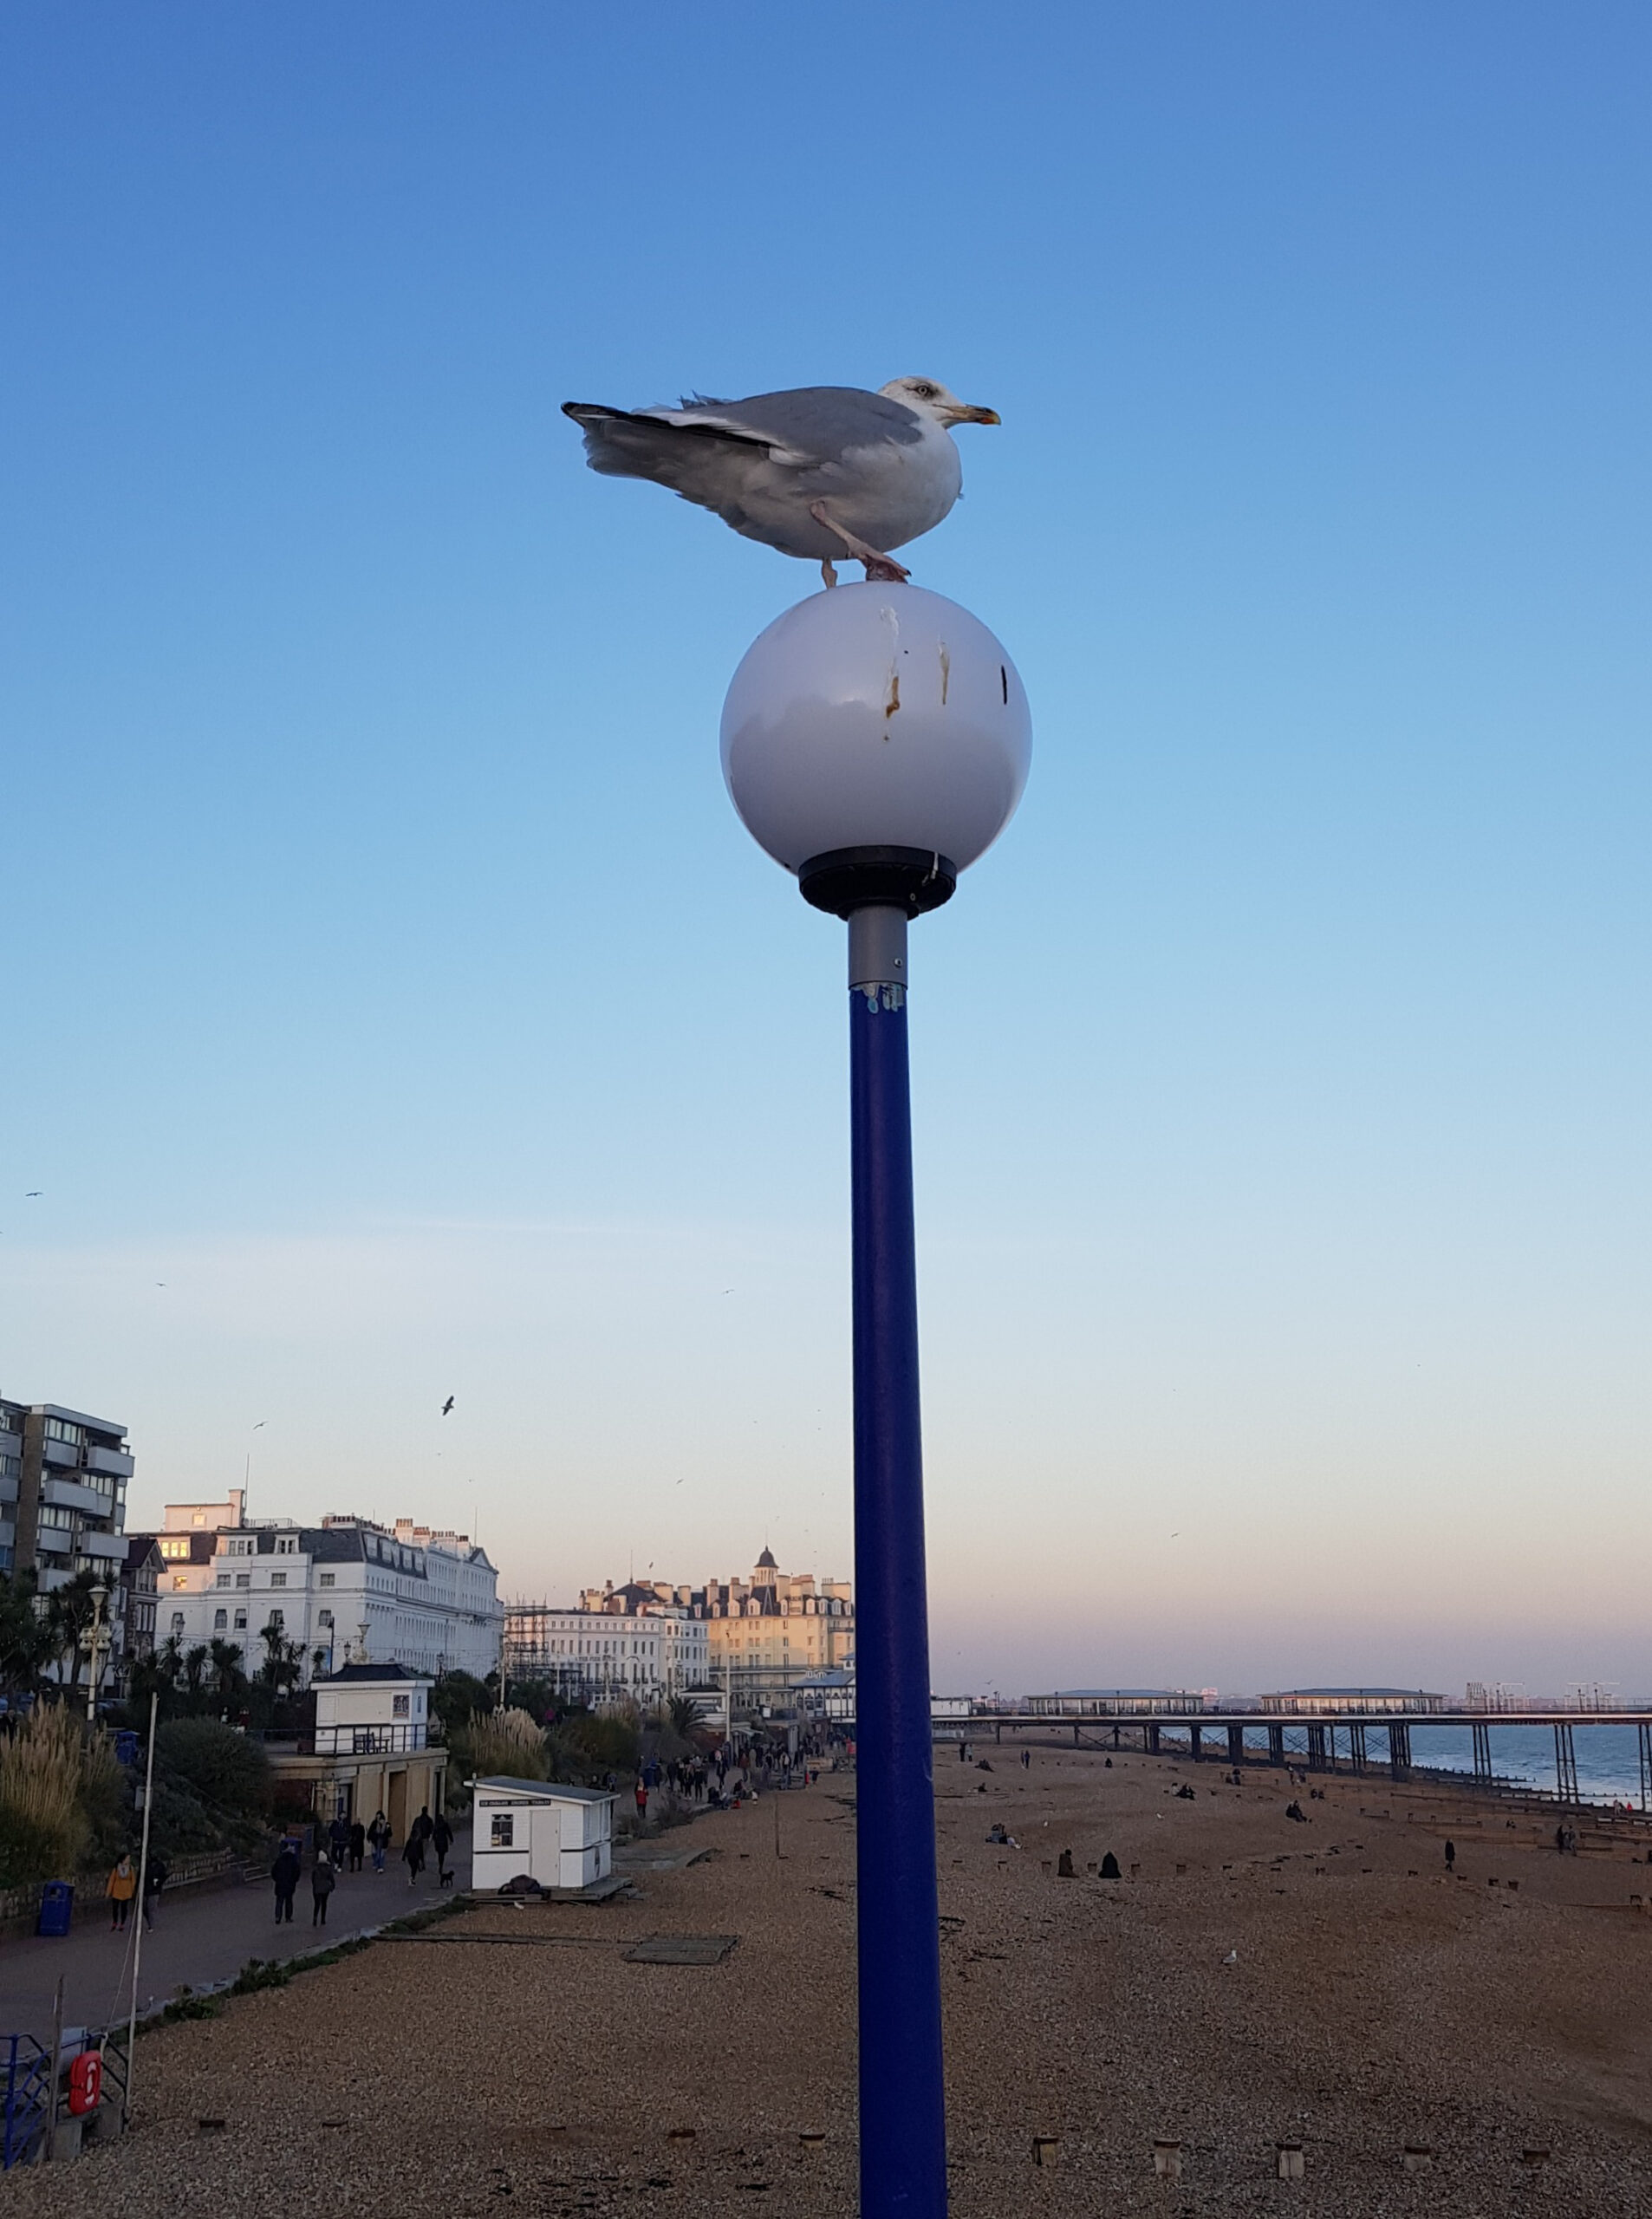 Seagull, Eastbourne beach and pier